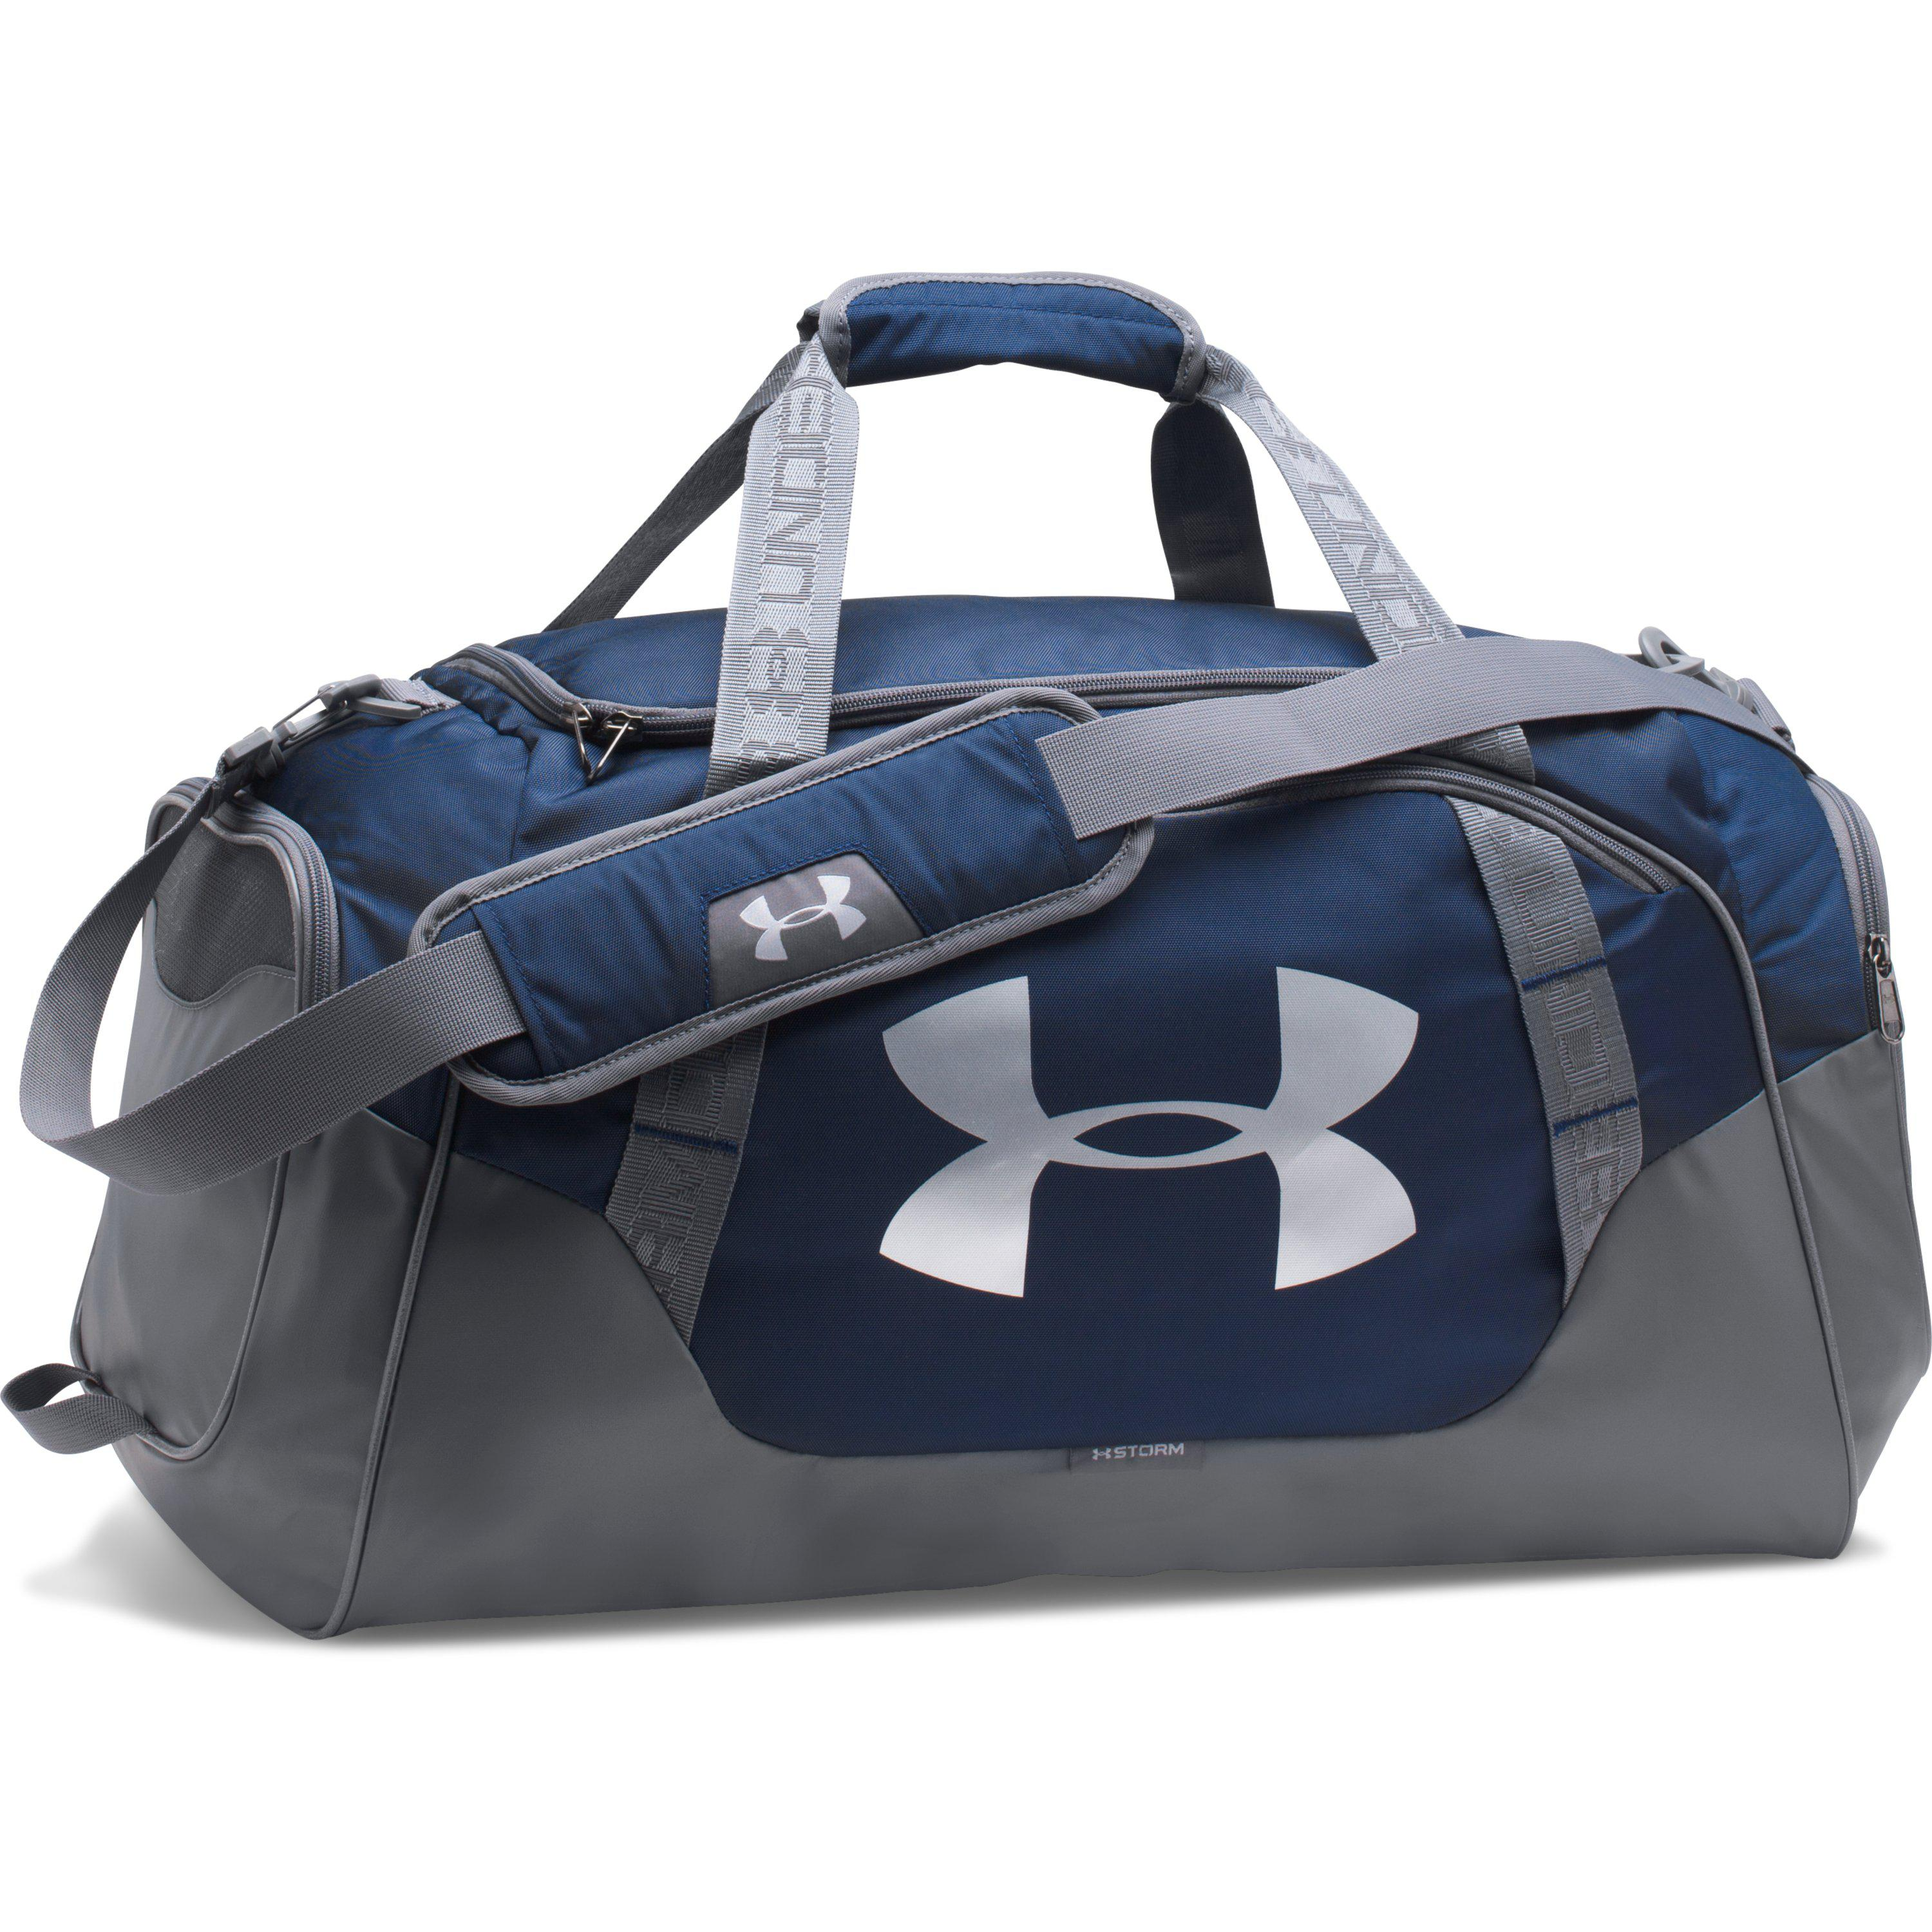 Under Armour Undeniable 3.0 Small Duffle Bag in Blue for Men - Lyst 16b2cc3859195